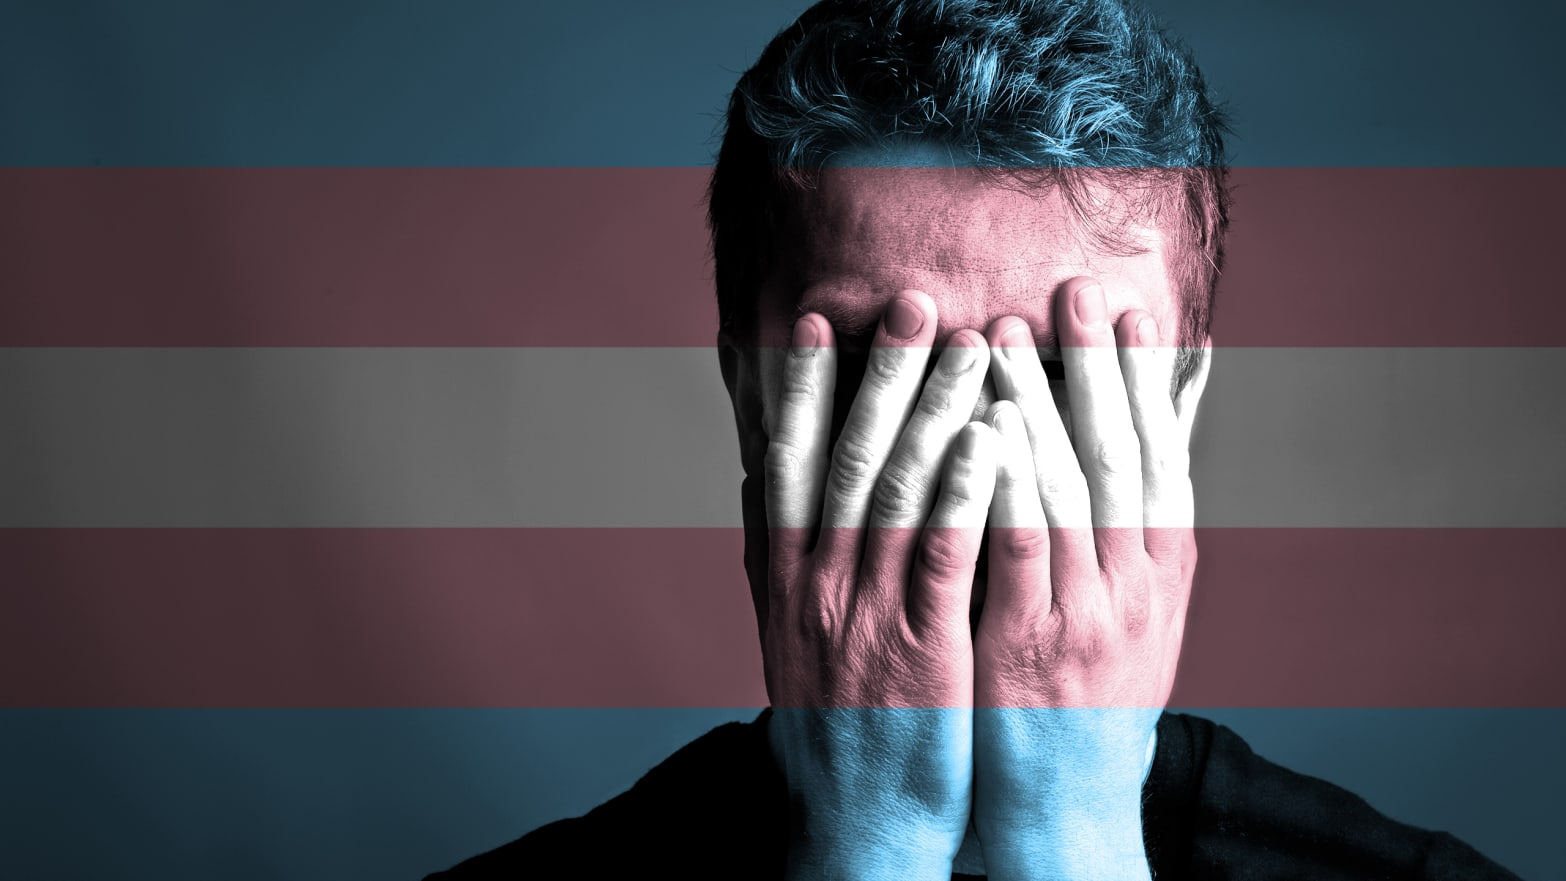 Why A Lot of Americans Don't Want To Befriend a Transgender